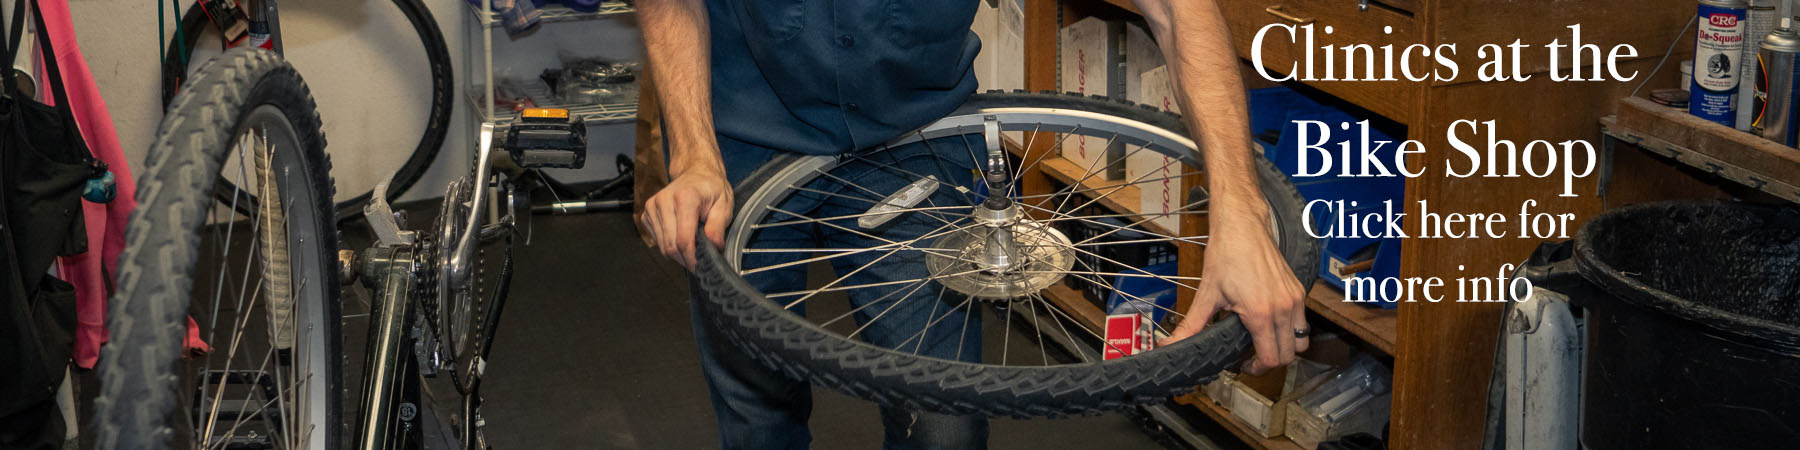 Clinics at the Bike Shop. Click here for more info. Bicycle repair classes